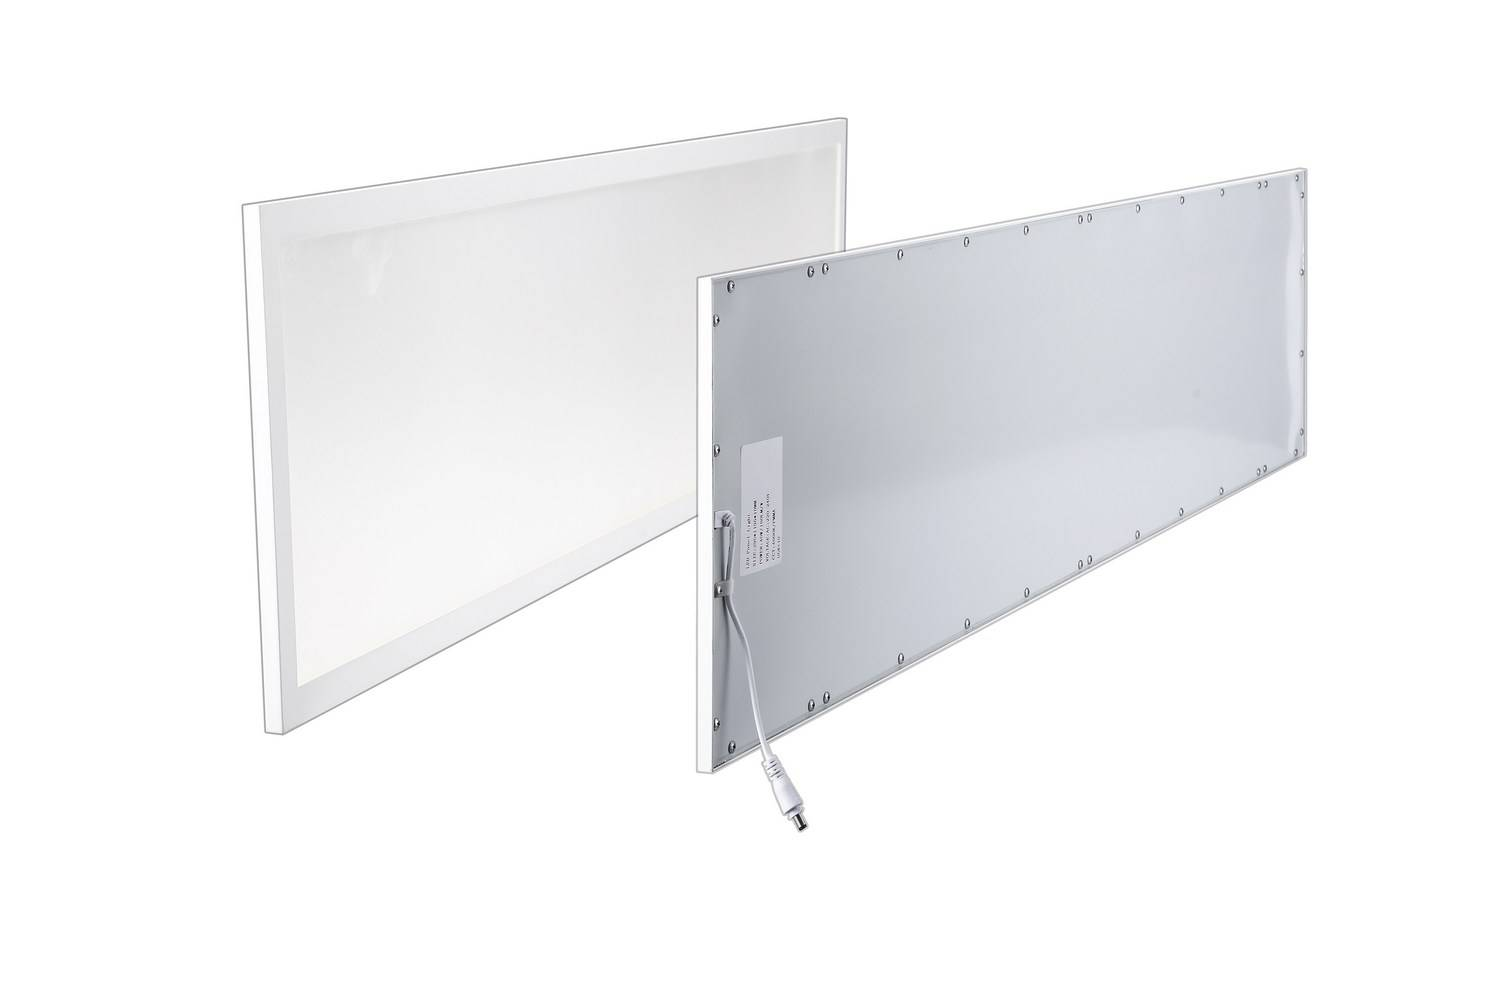 LED panel 30x120 edge-lit panel 300x1200 ultra-thin led flat panel light Europe UK CE CB OHS TUV 5